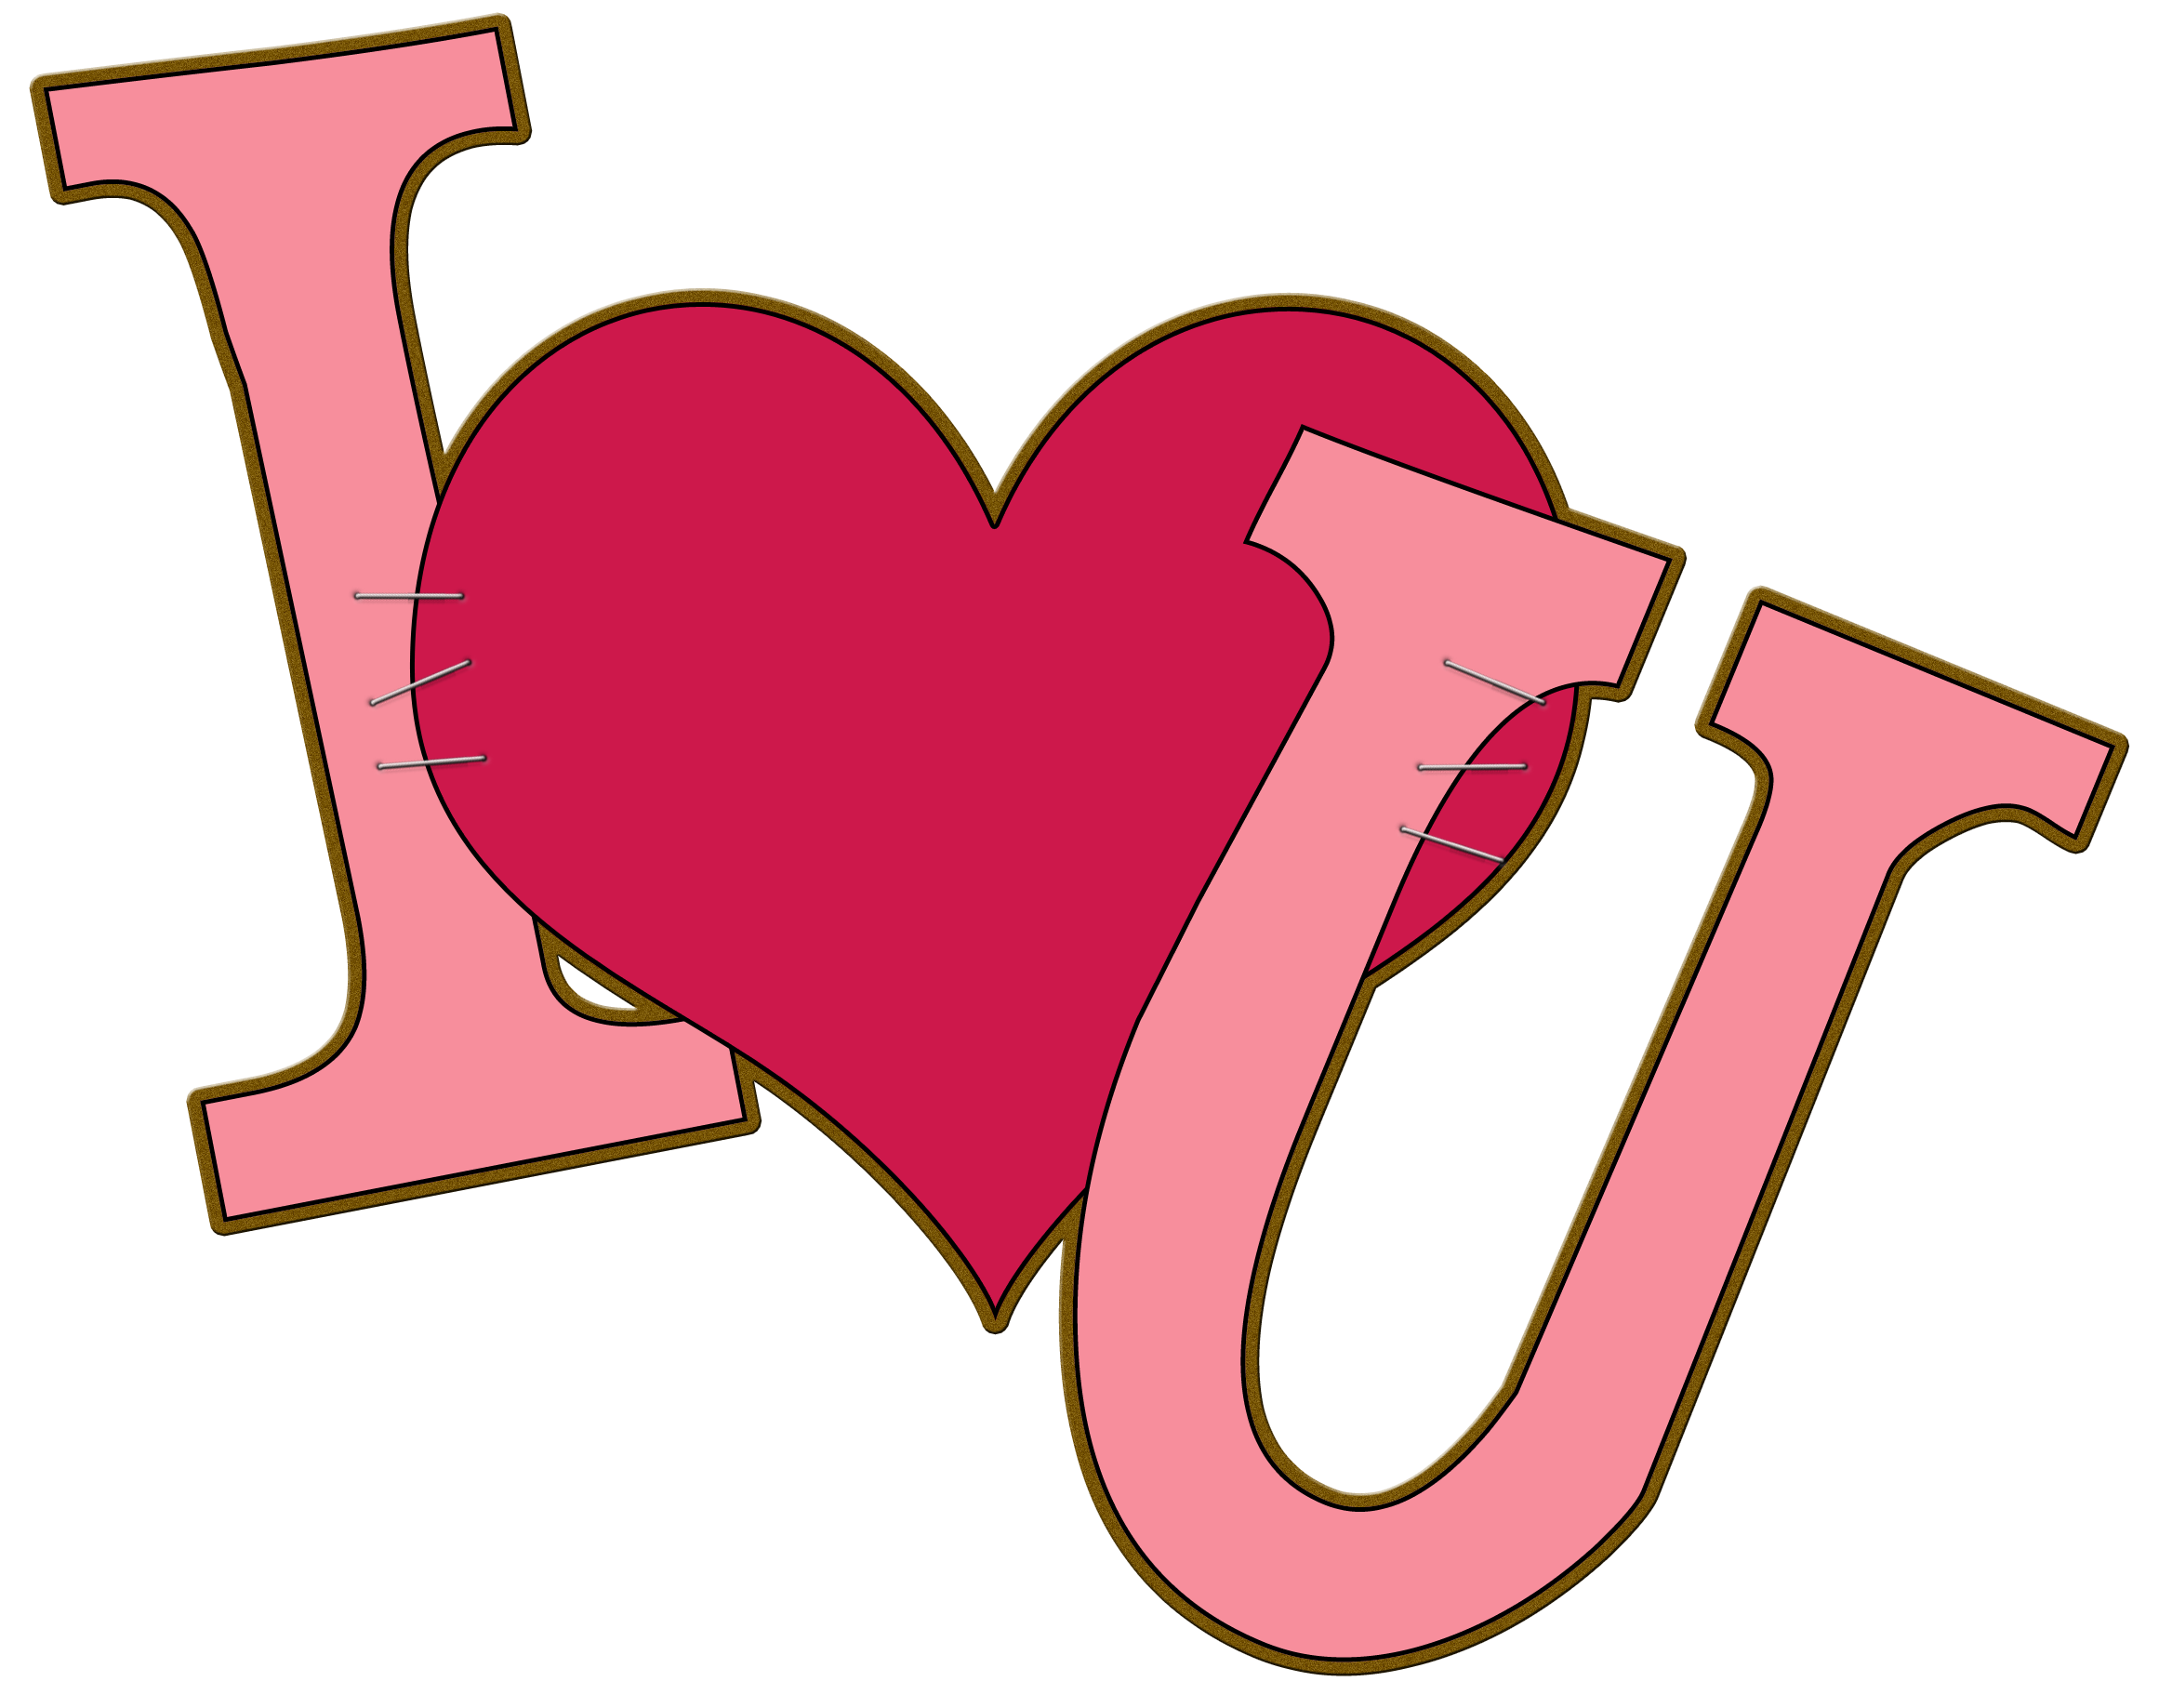 People In Love Clipart Free Clipart Imag-People in love clipart free clipart images clipartwiz-11